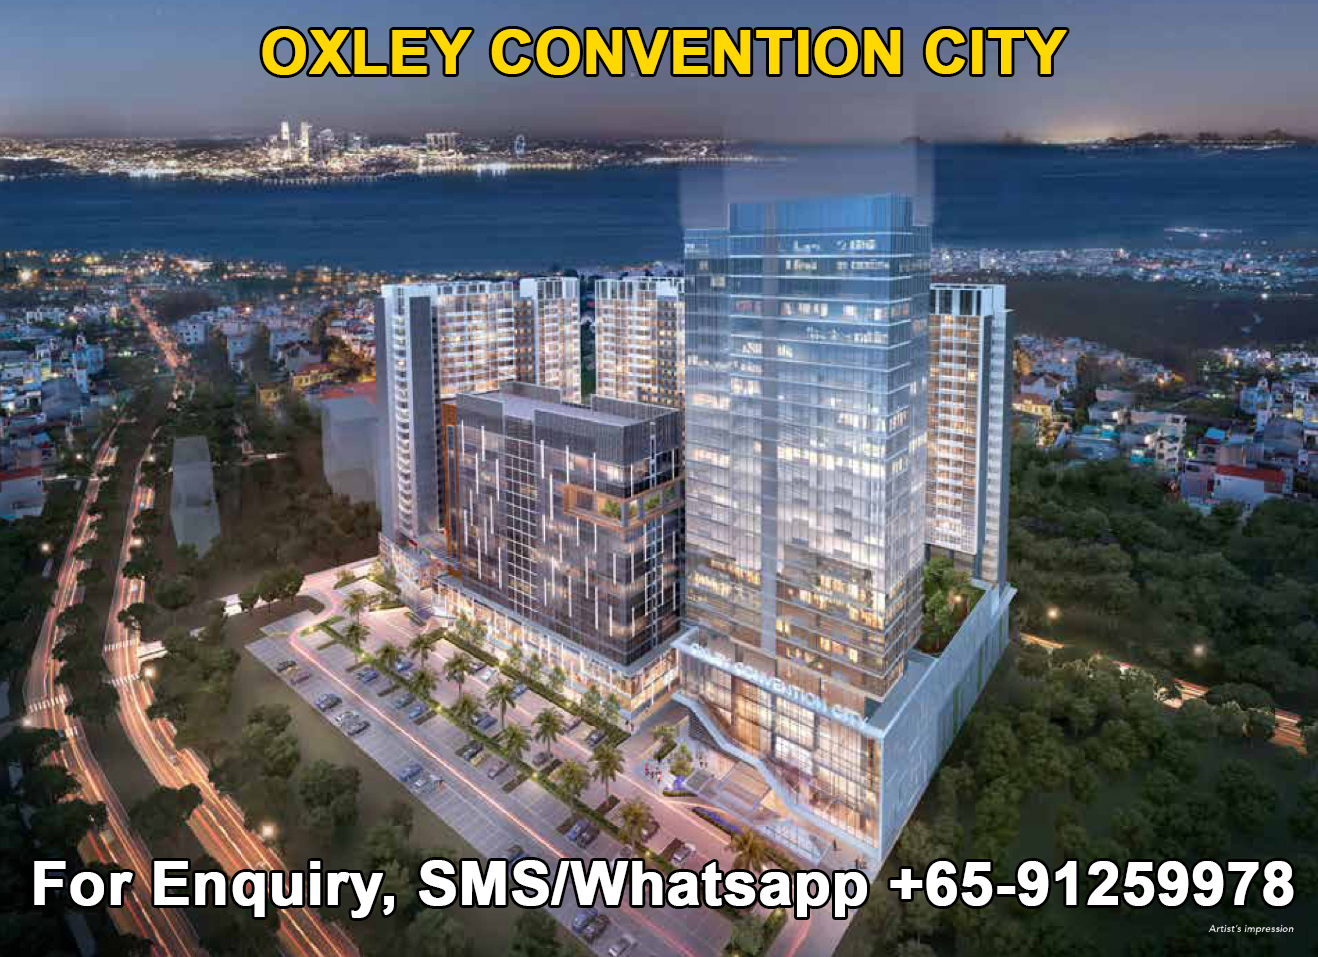 Oxley Convention City